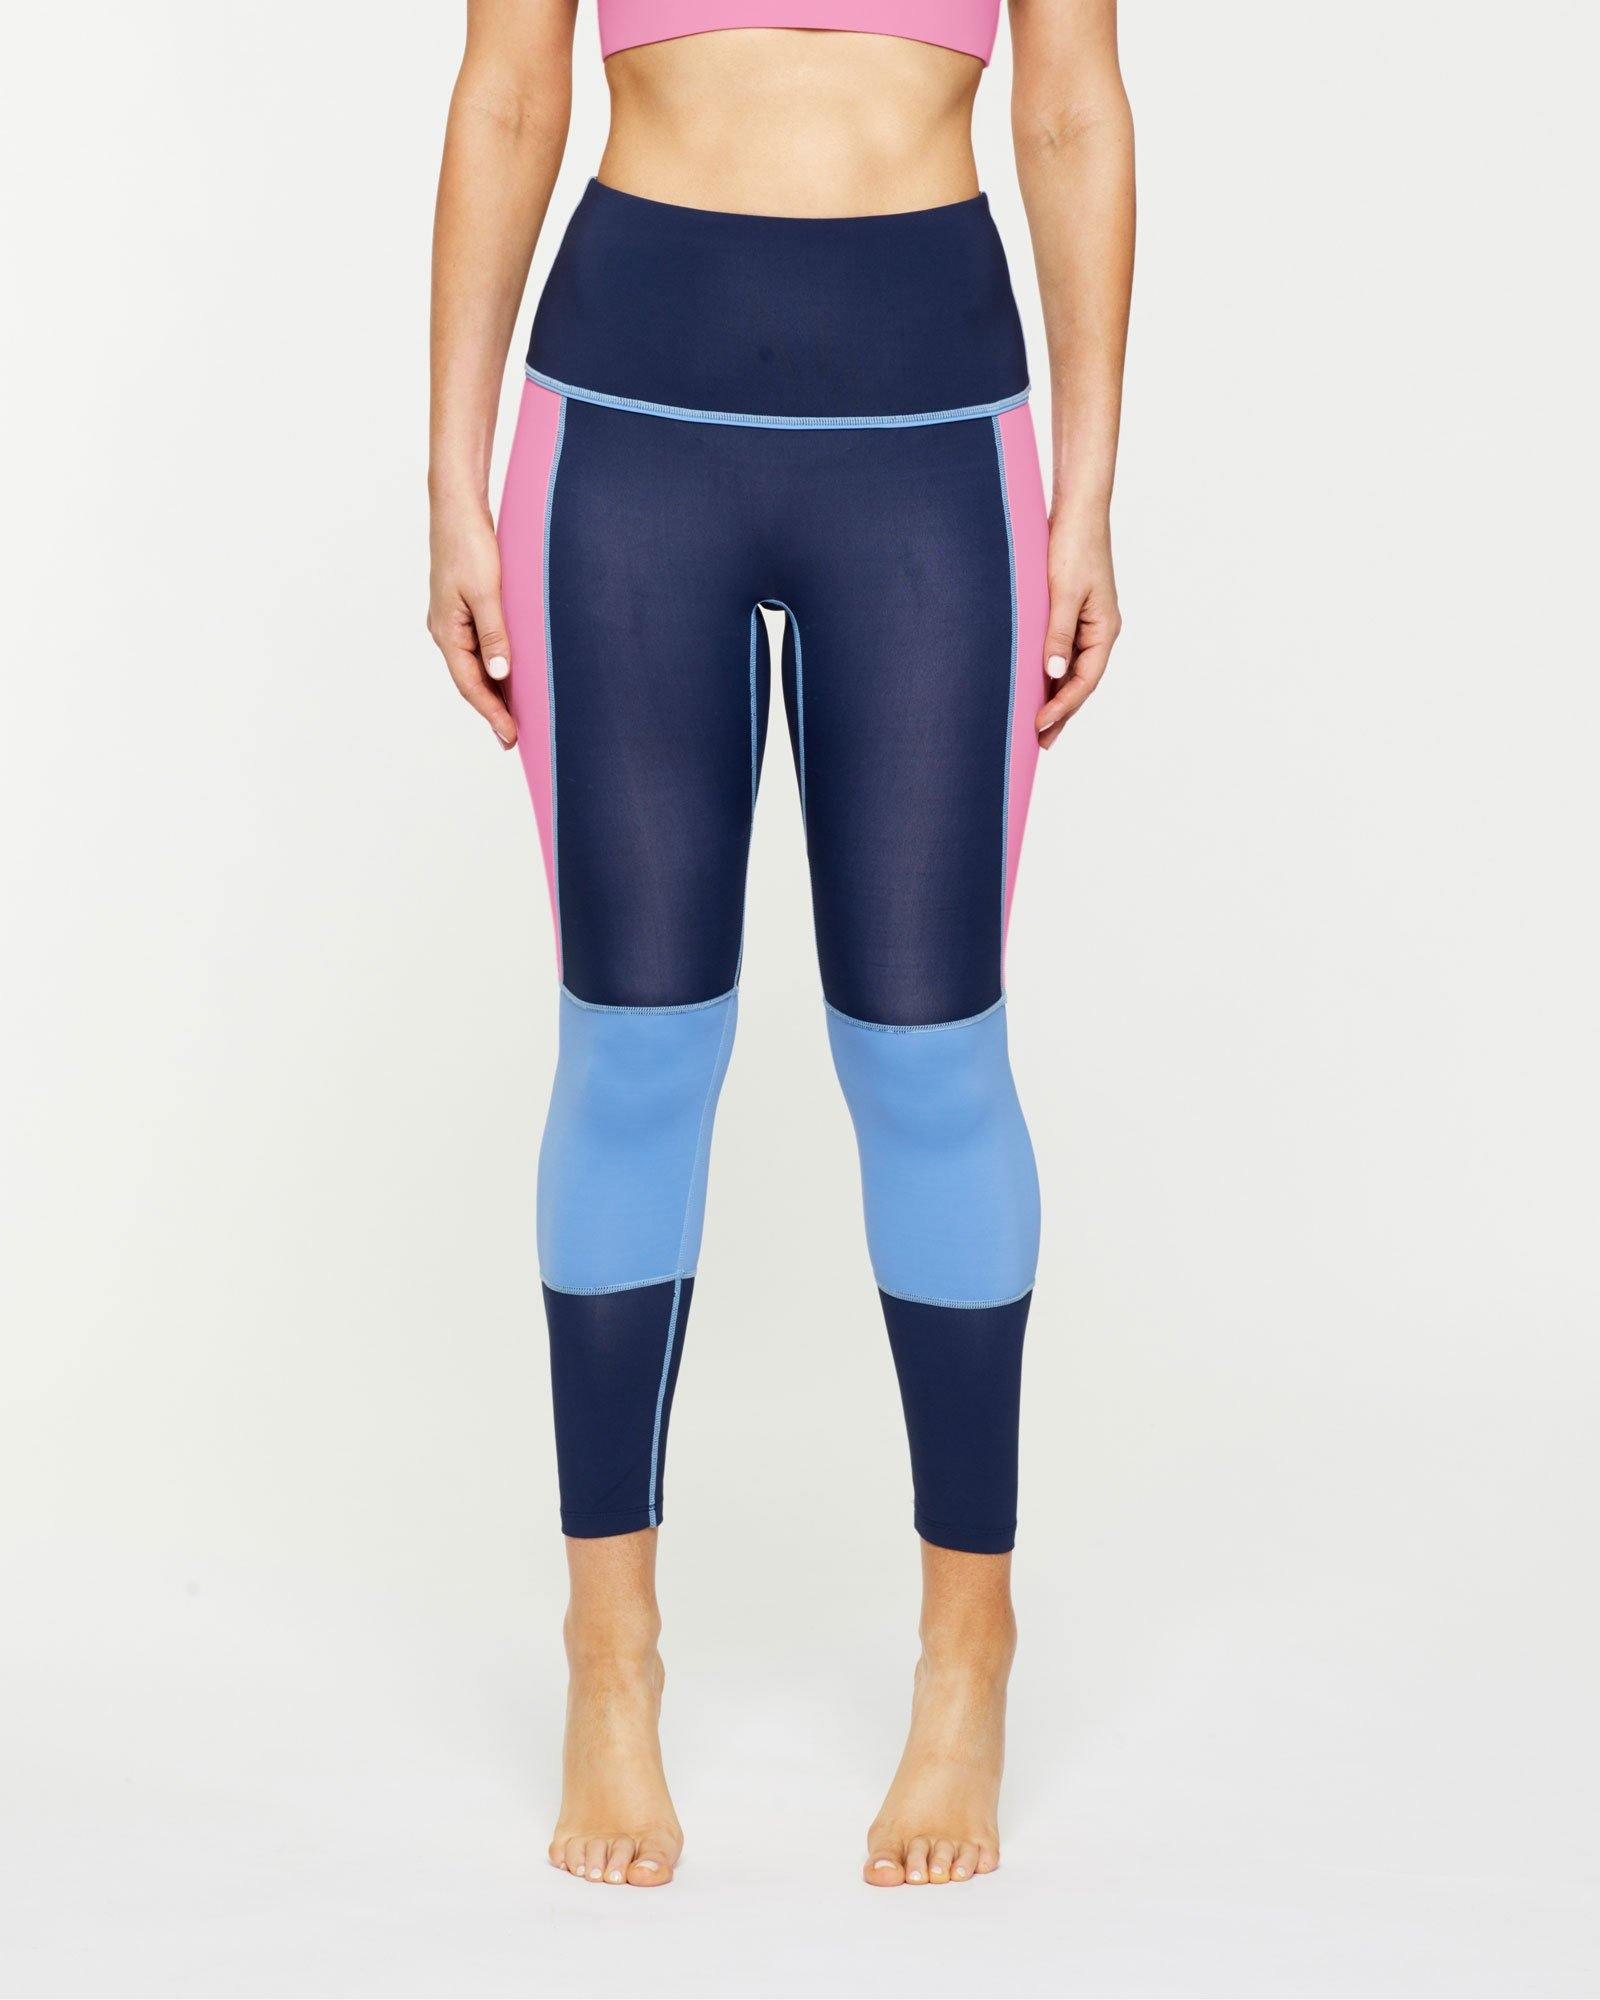 Femininely GRACILIS 7/8 HIGH WAISTED LEGGING Navy Blue WITH CONTRAST PANELS Sky blue and peony pink, front VIEW for pilates, barre, yoga, dance, gym-workouts